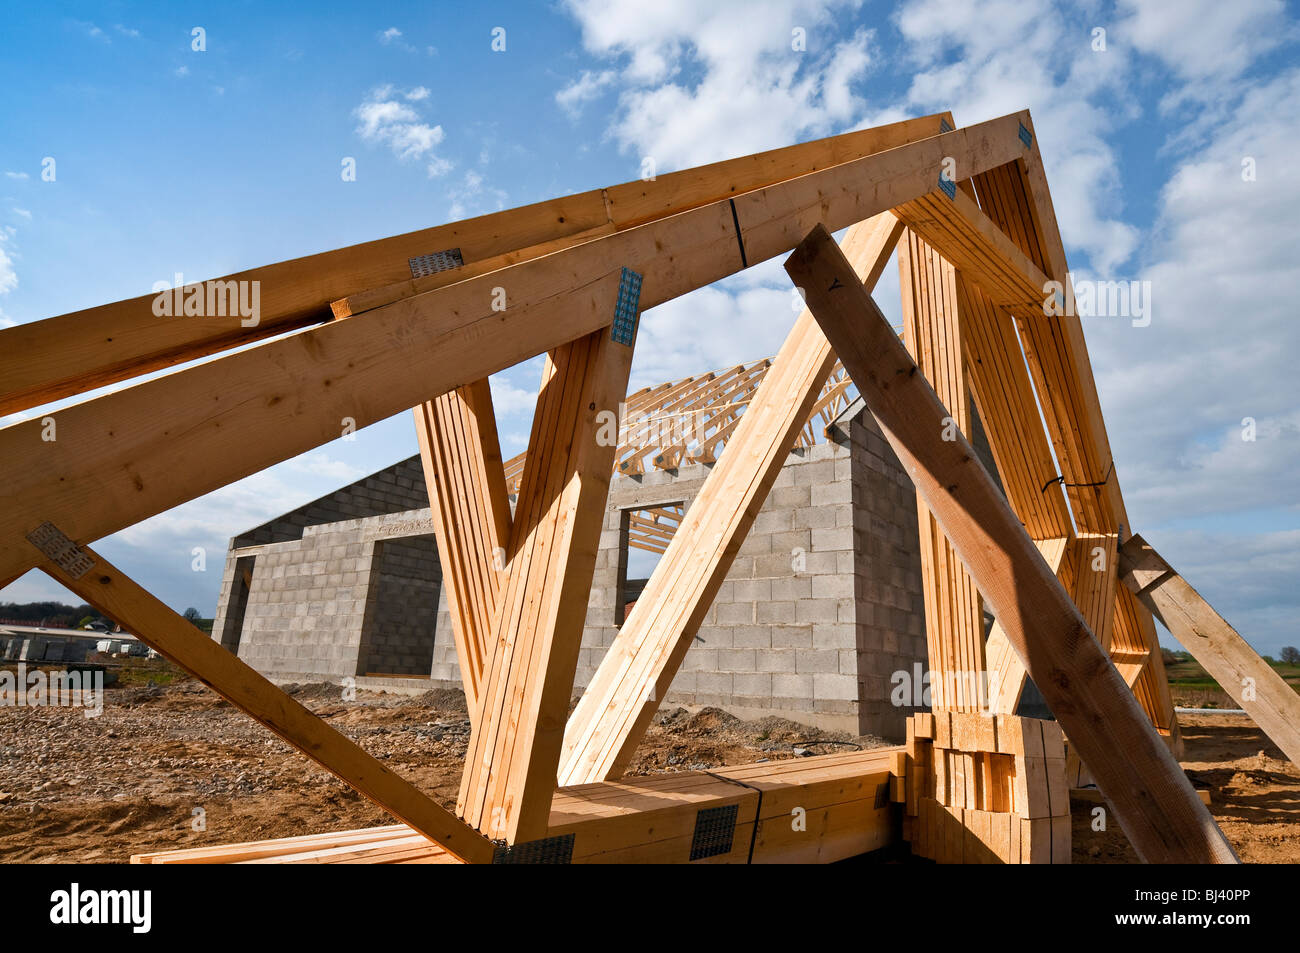 Prefabricated roof trusses stock photos prefabricated for Roof trusses